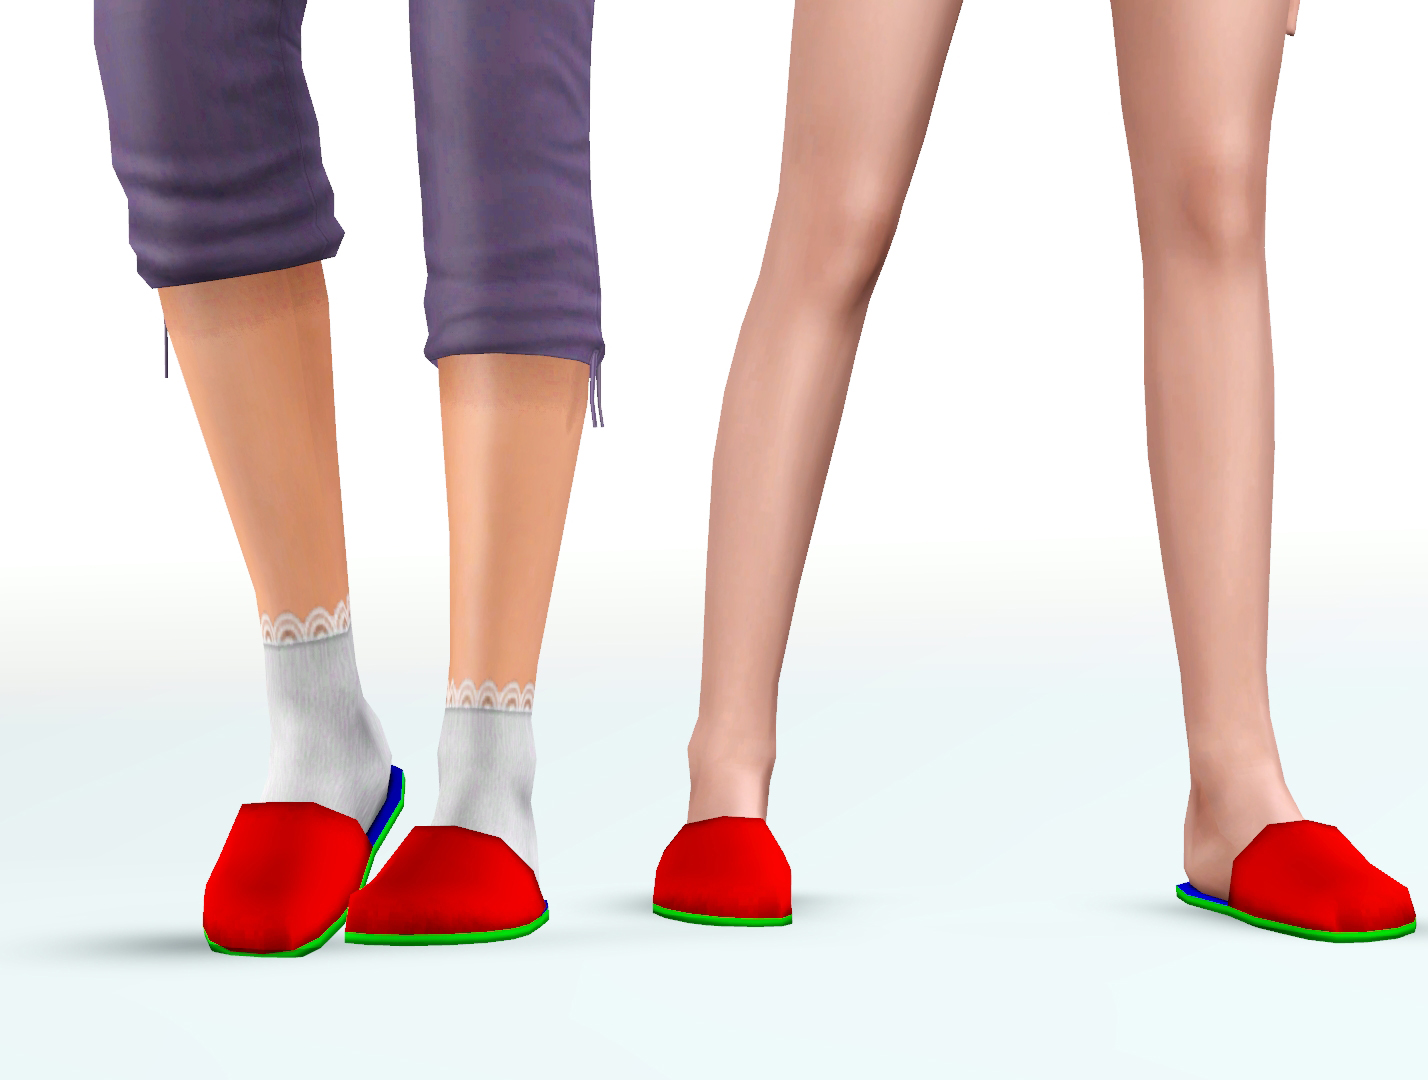 Just Slippers - Plain Slippers for T-A M/F by Pickypikachu